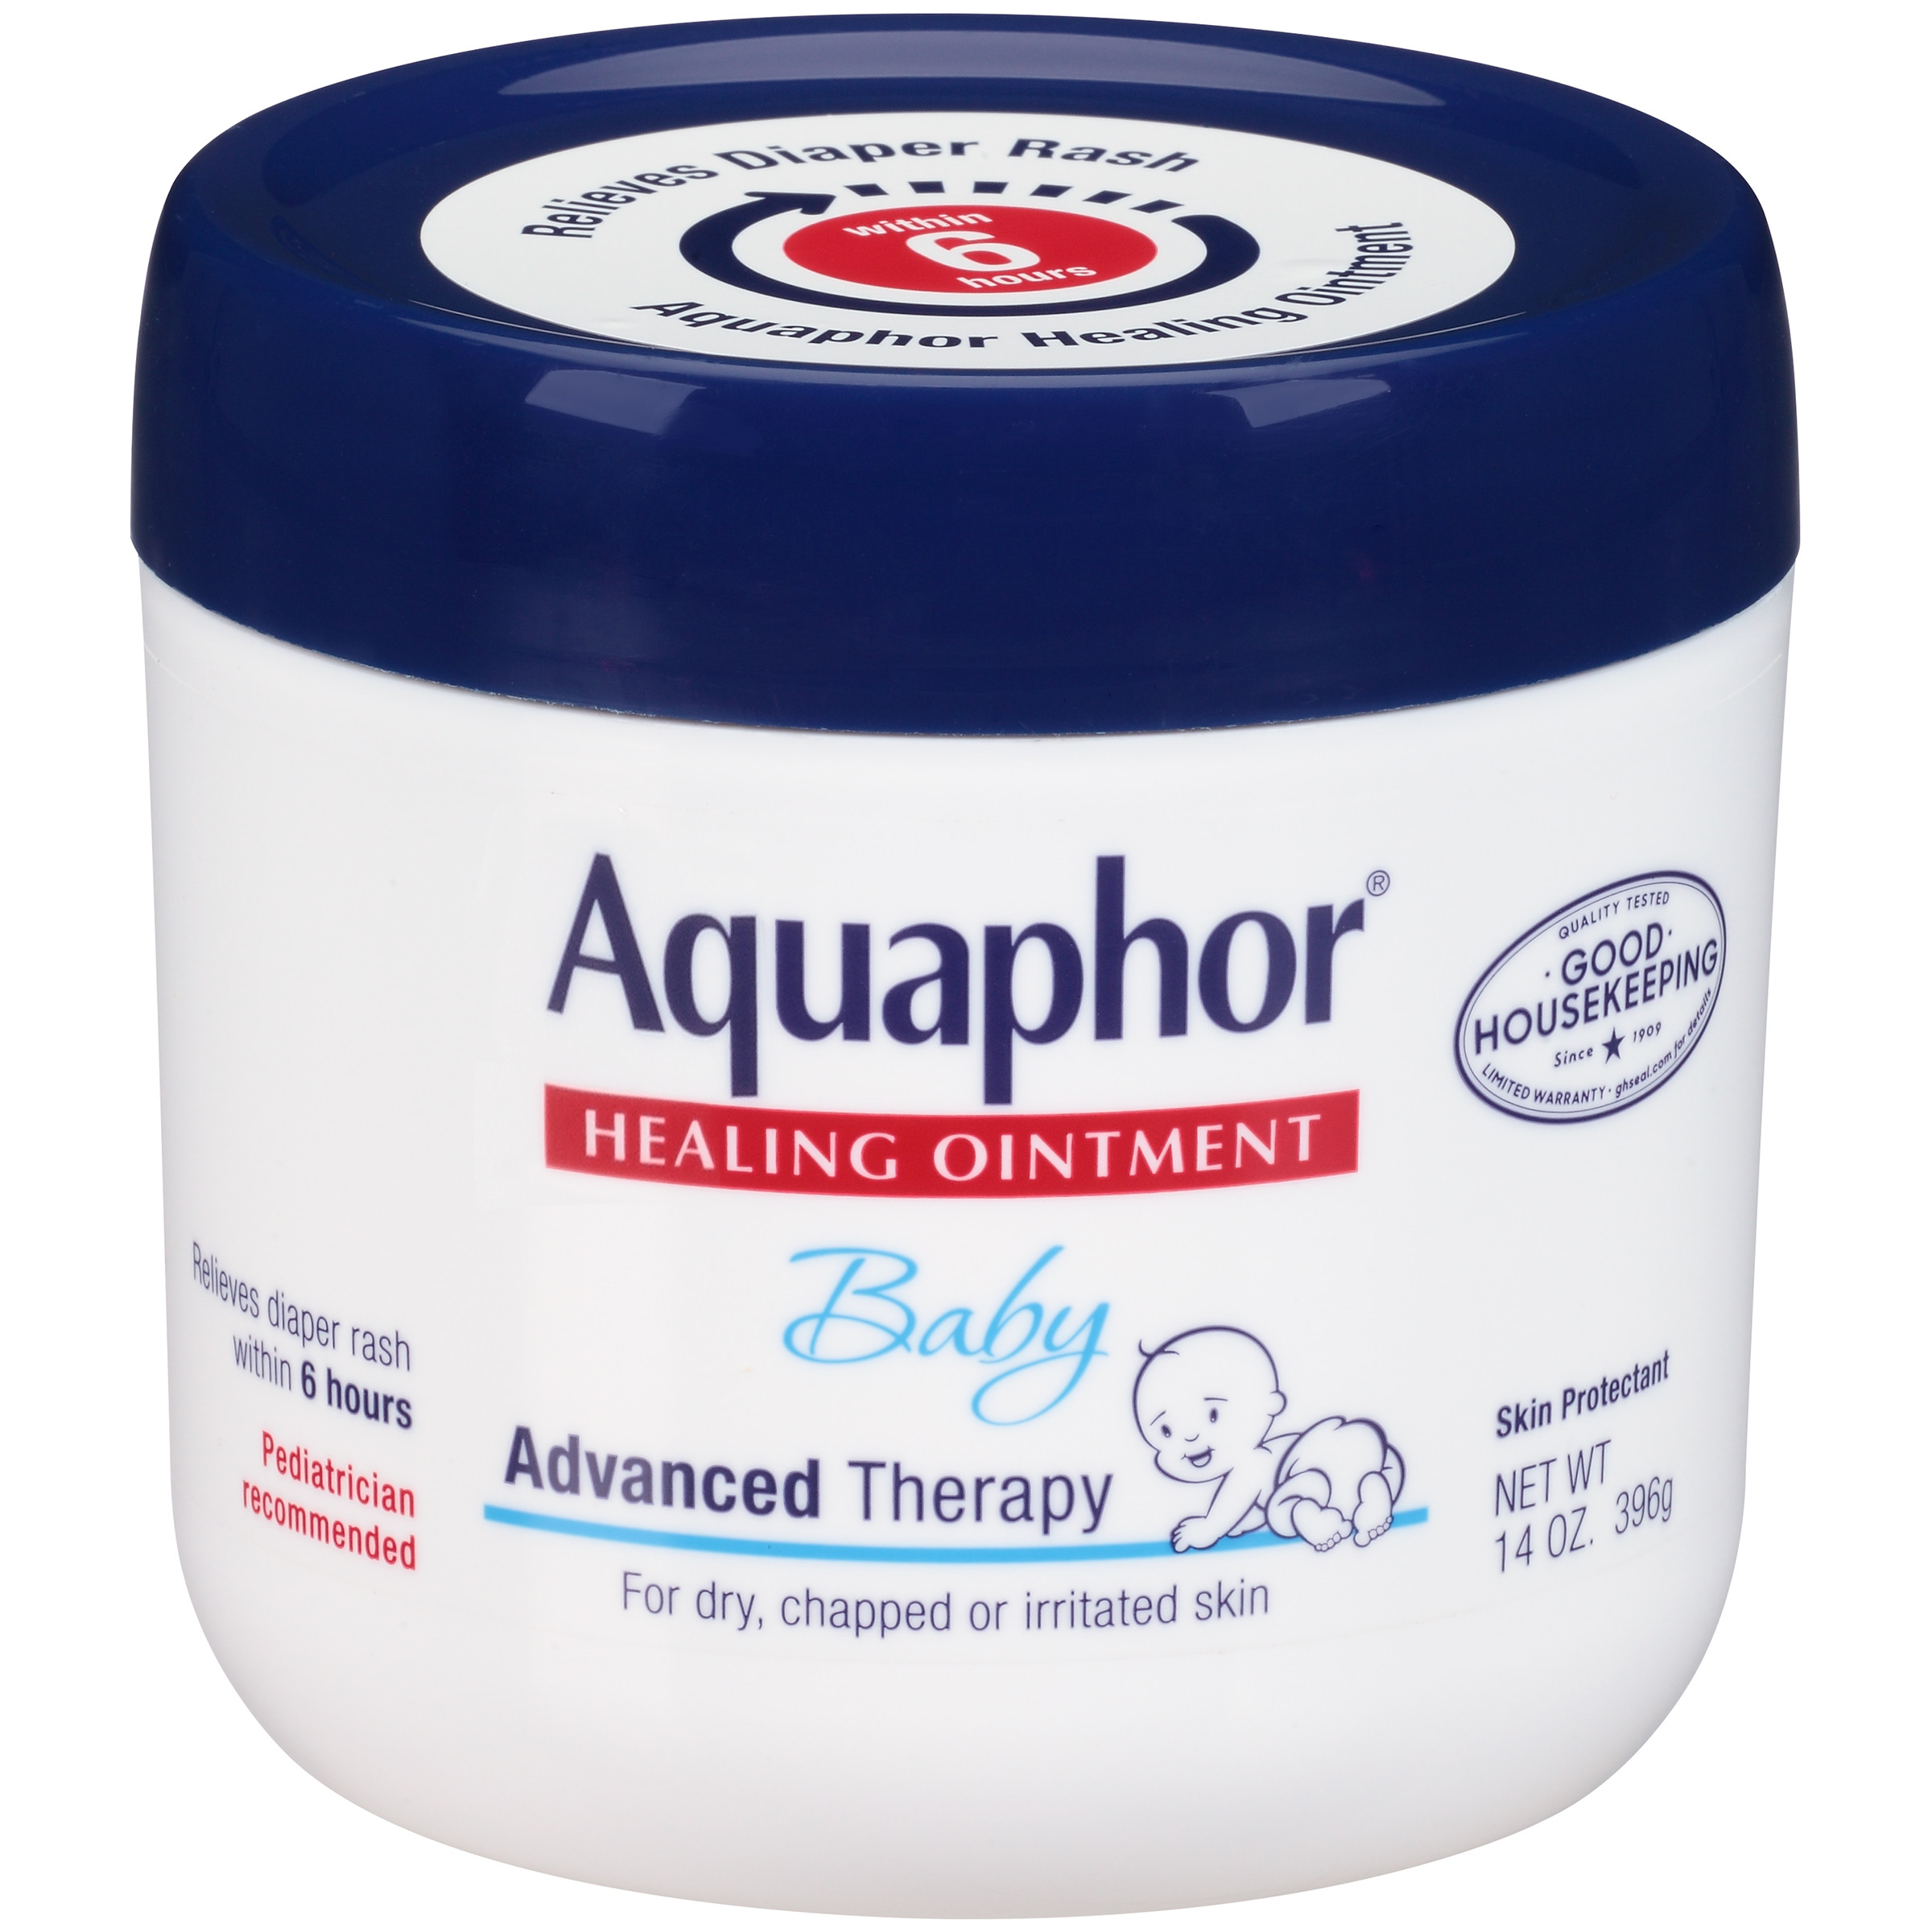 Aquaphor® Baby Advanced Therapy Healing Ointment Skin Protectant 14 oz. Jar